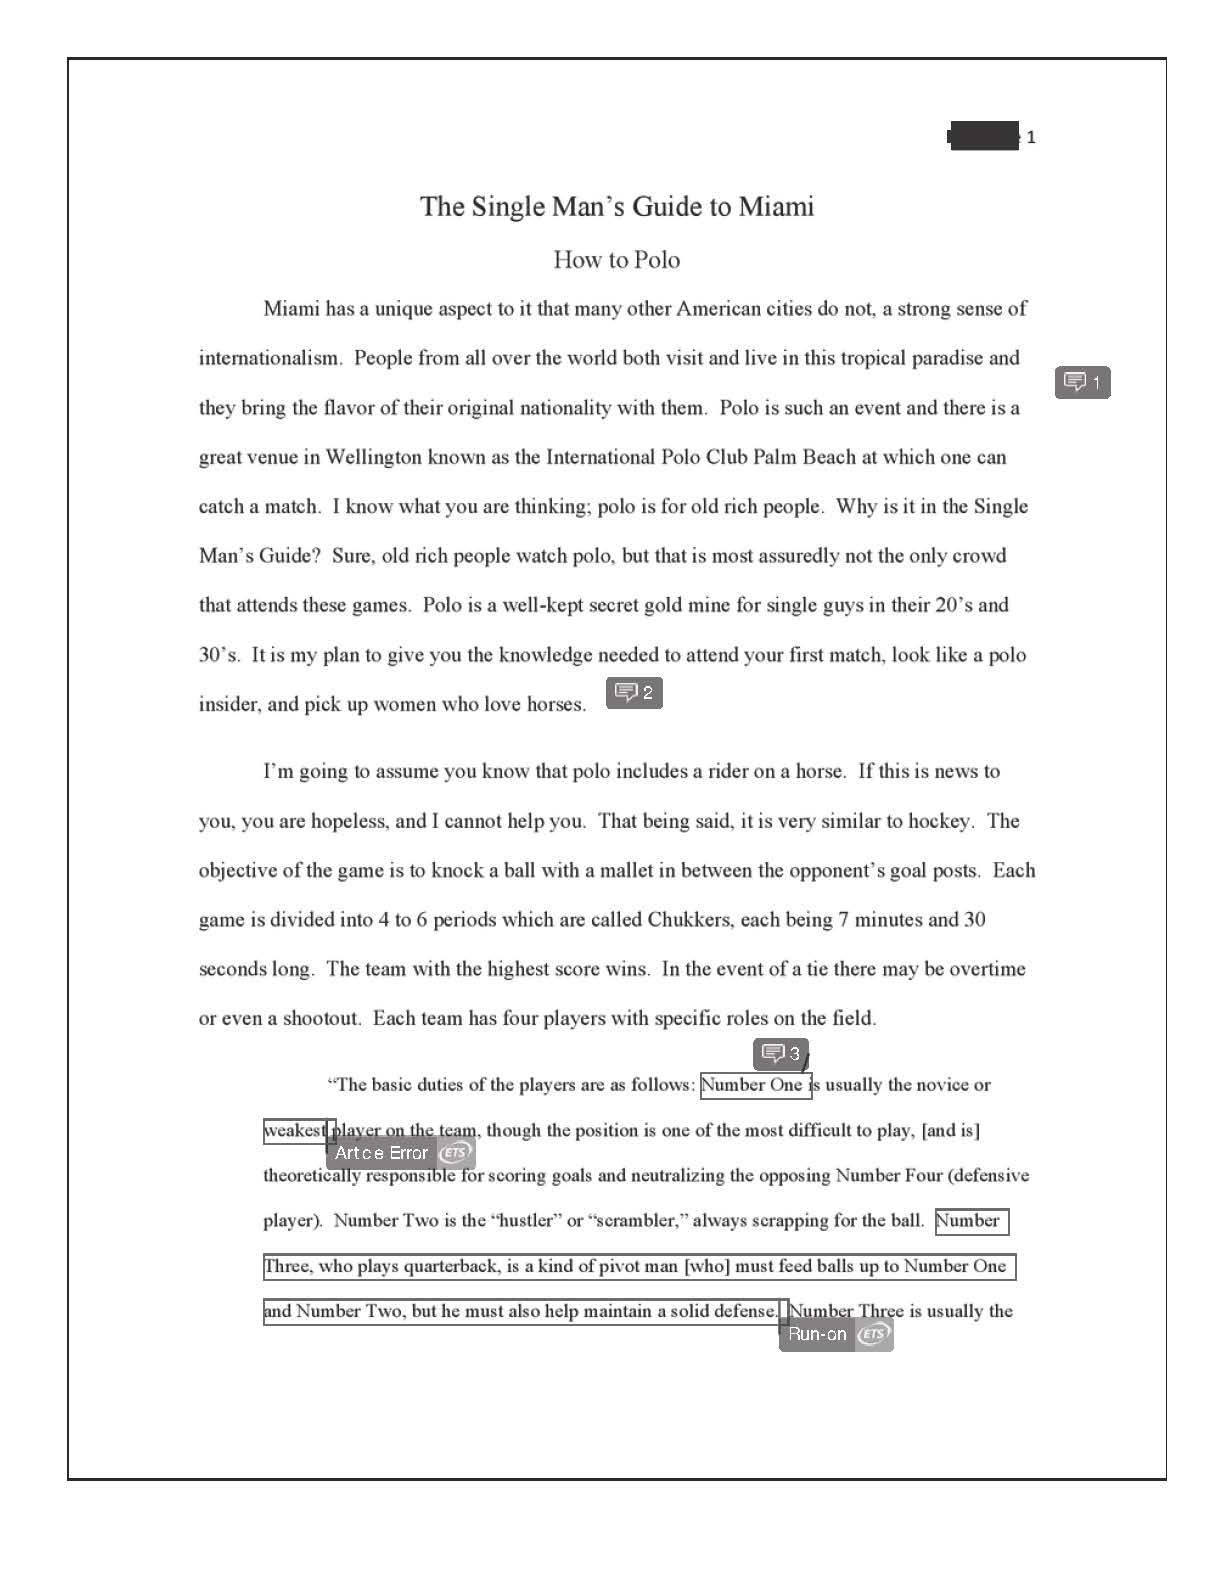 003 Example Of An Essay About Education Examplesative Essays Writing Utopia Instructionative Final How To Polo Redacted P Quiz Prewriting Quizlet Staggering Examples Informative Expository For High School Students Sample Full